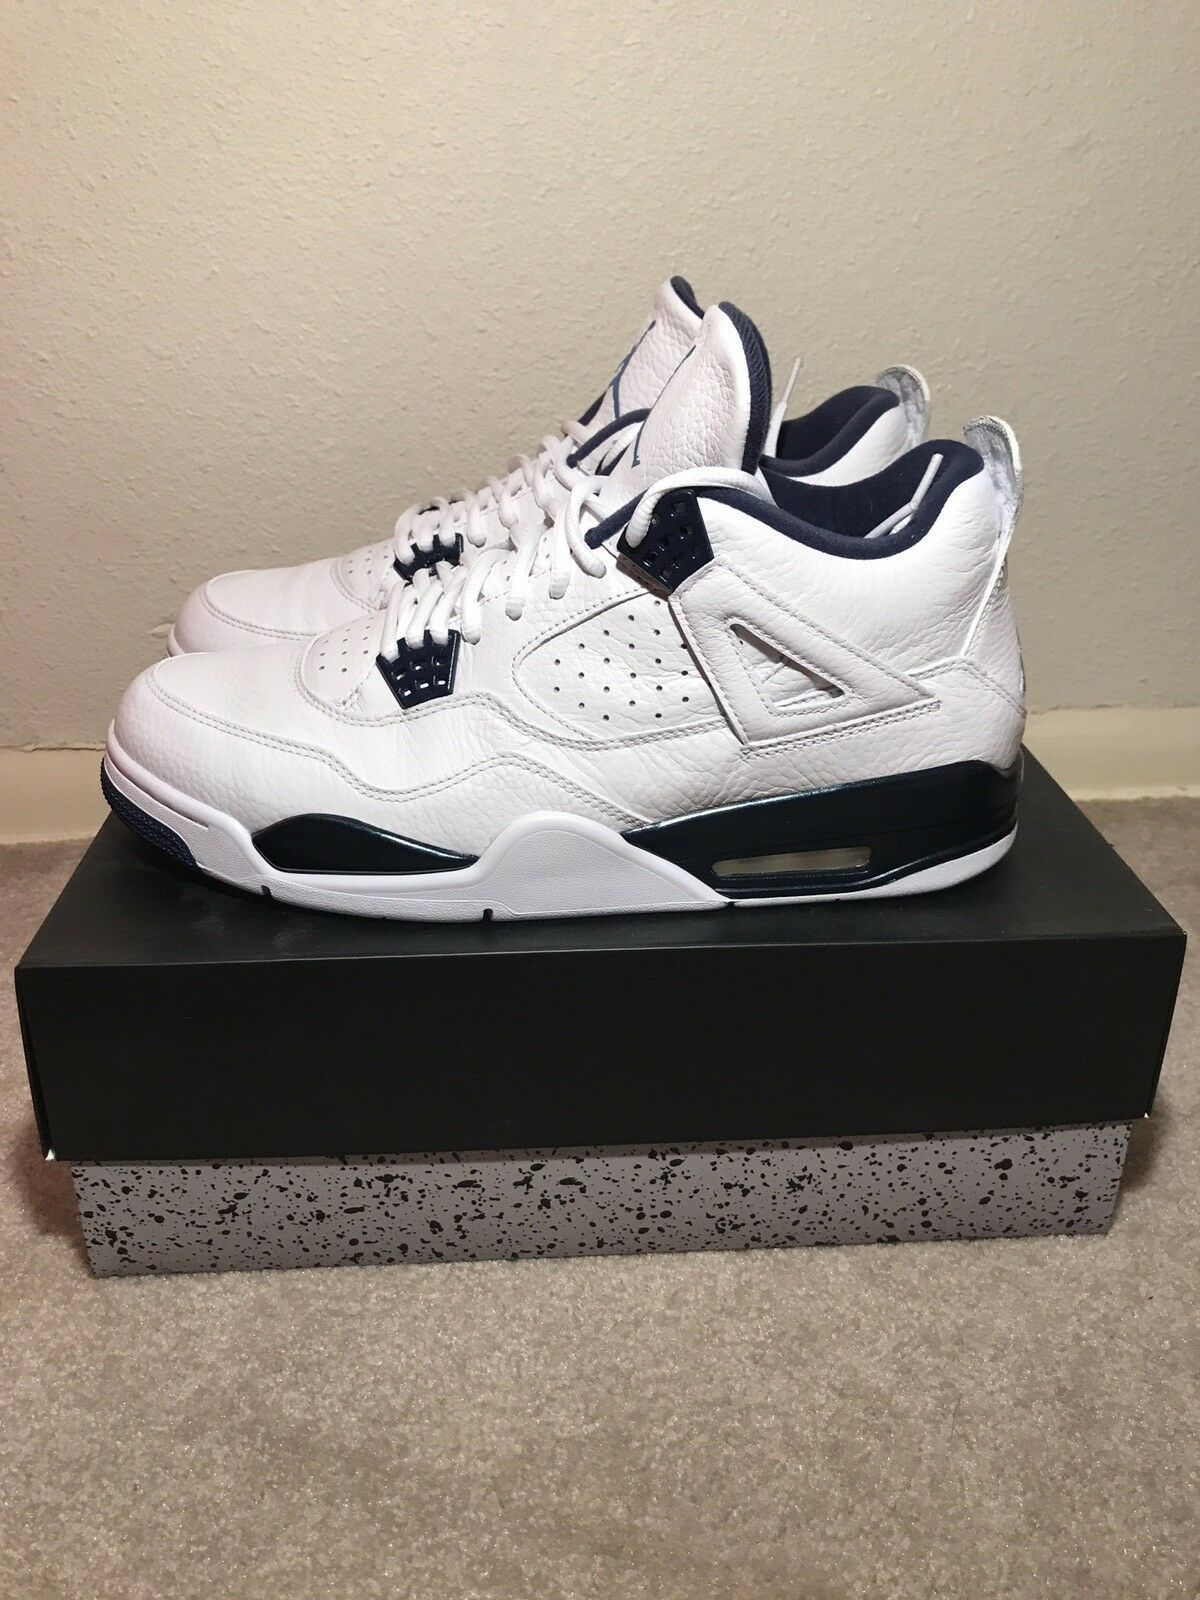 Air Jordan 4 Retro LS Legend Blue Navy Remastered White Columbia Men's size 12